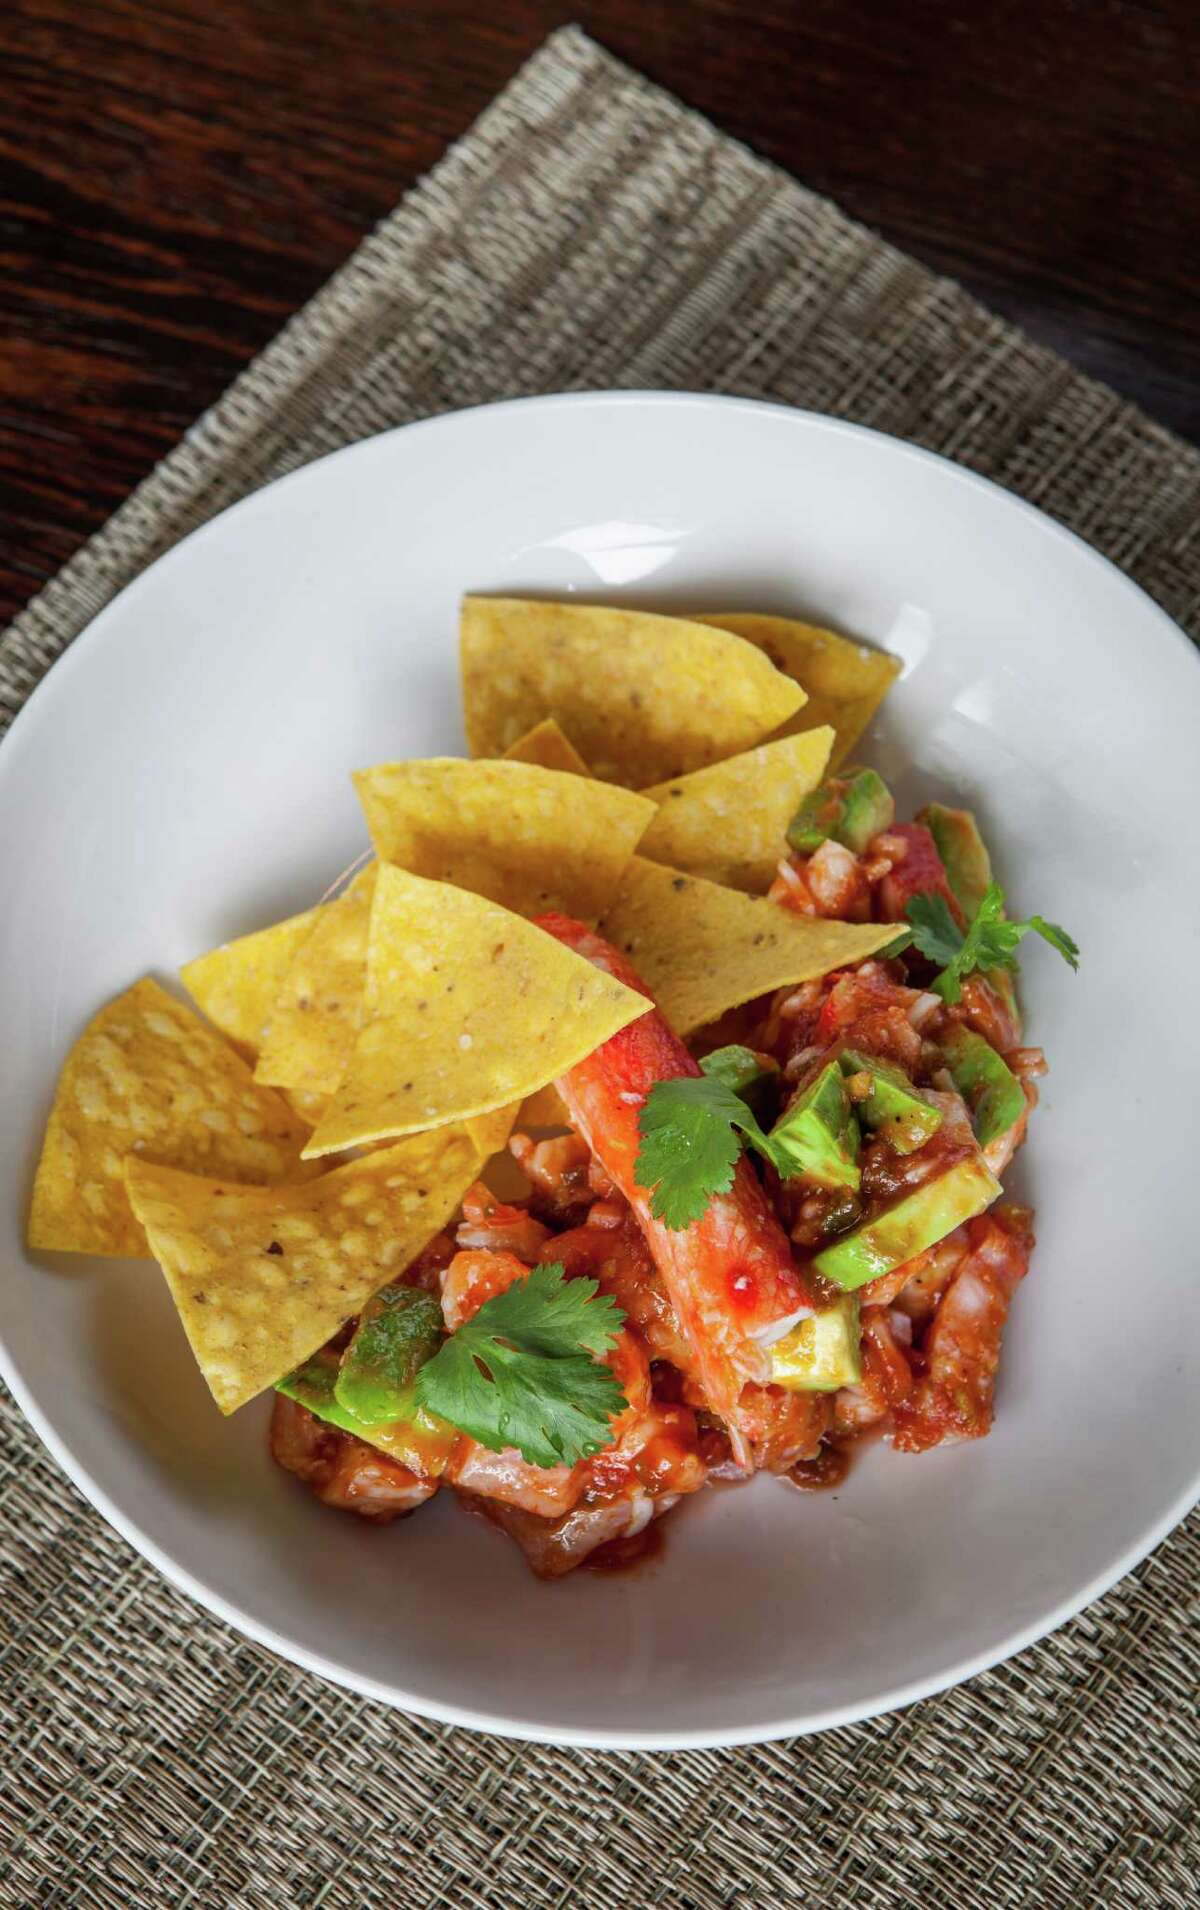 Triniti: Campechana with crab, flounder, shrimp, tomatoes, chiles, avocado and tortilla chips